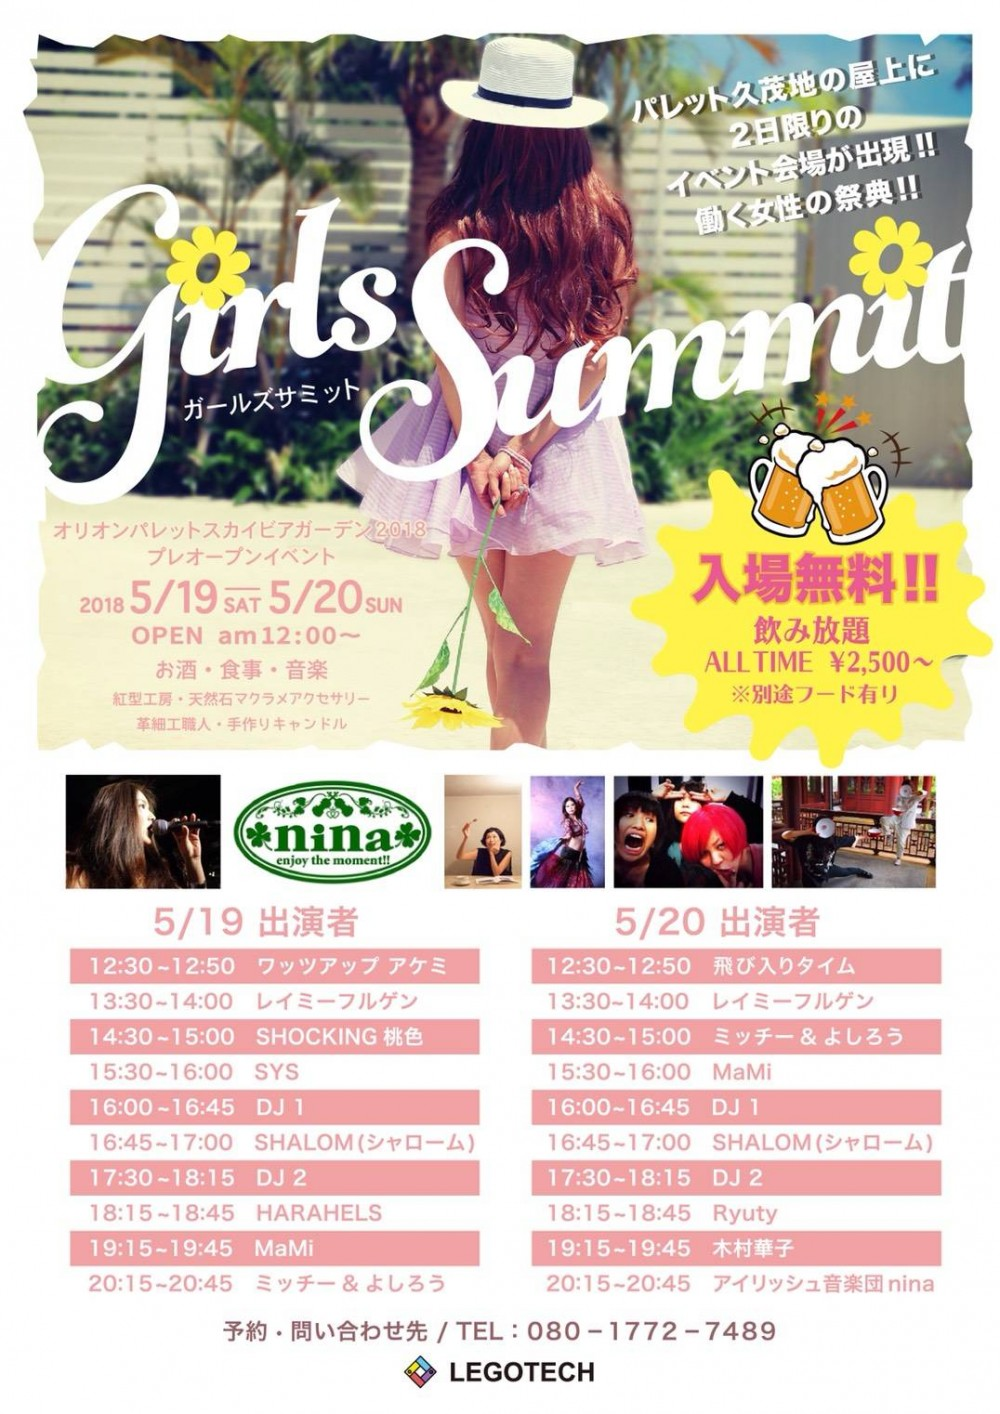 5/20 girls summit